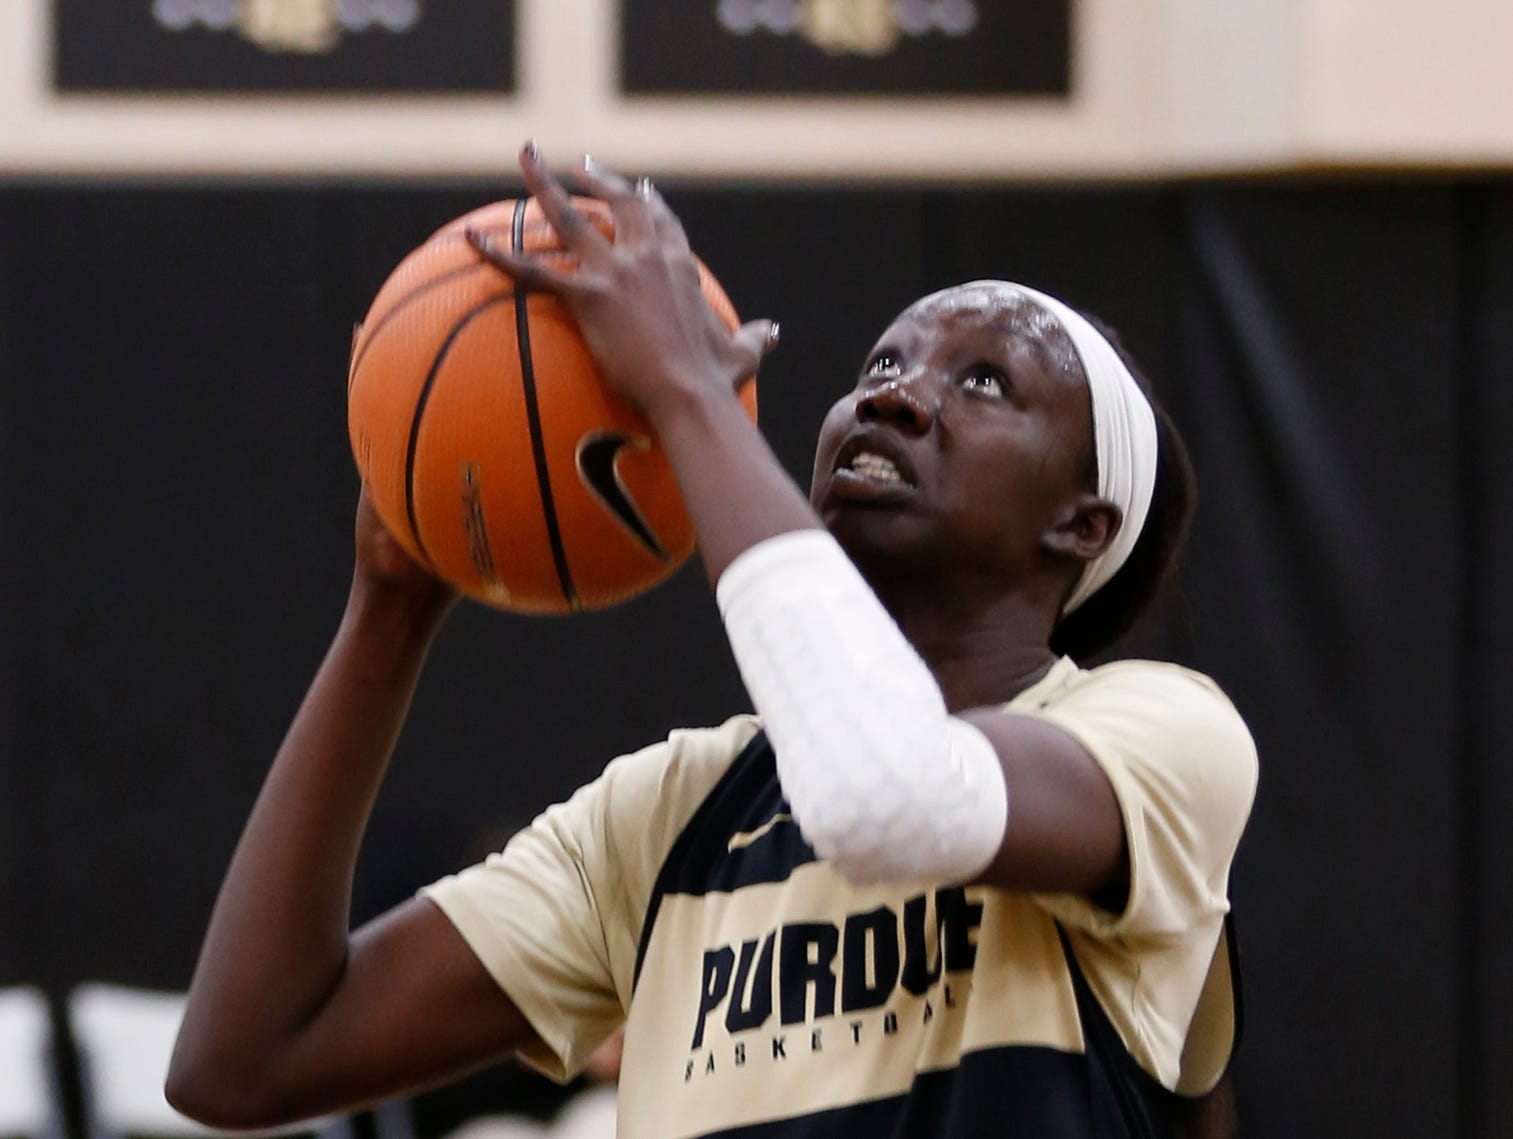 Nyagoa Gony with a shot during Purdue women's basketball practice Wednesday, September 26, 2018, at Cardinal Court in Mackey Arena.